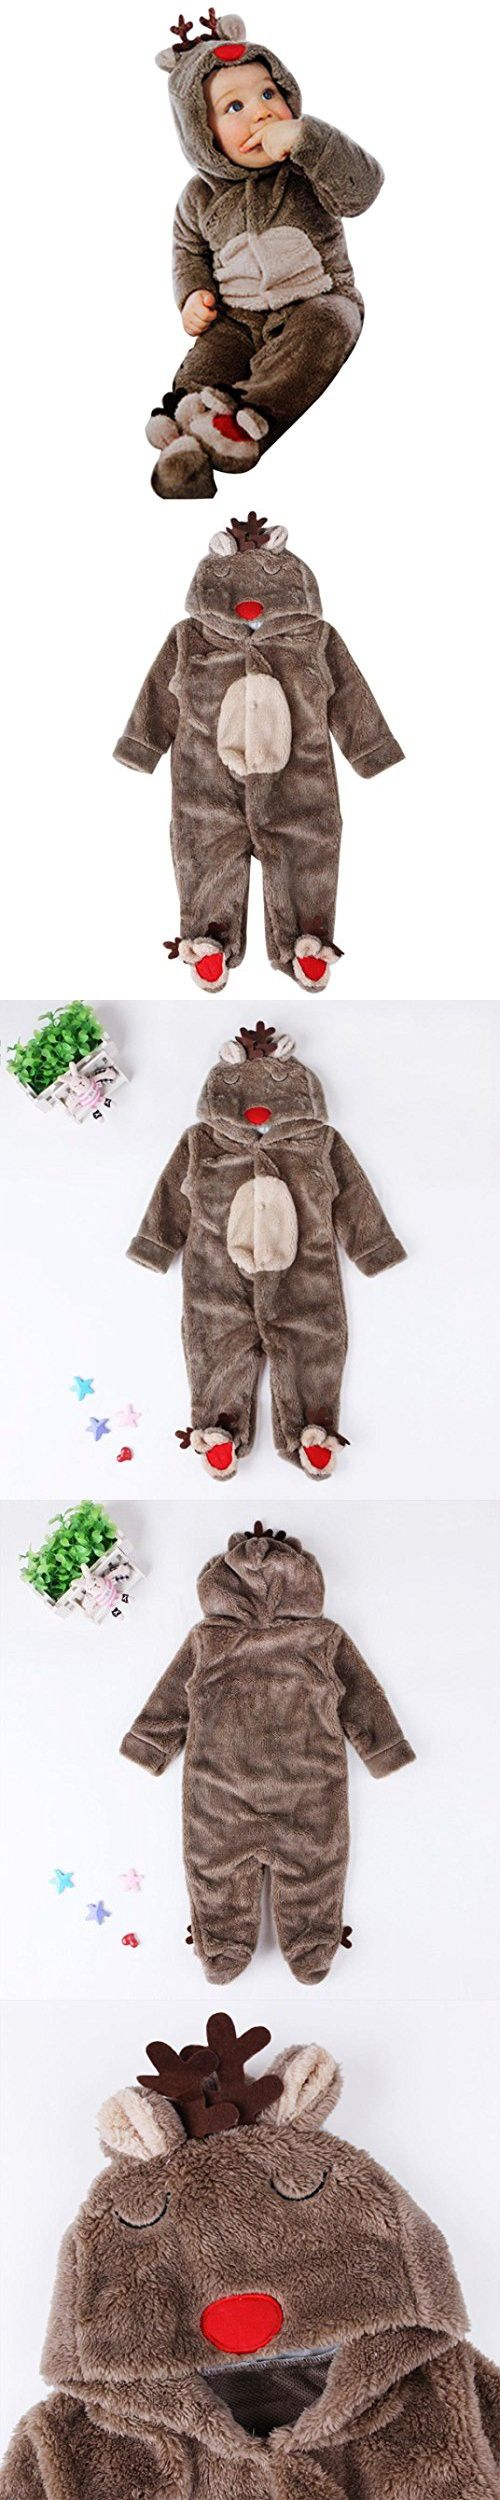 GBSELL Newborn Baby Boys Girls Winter Warm Deer Romper Pajamas Clothes Snowsuit (Coffee, 12M) so cute outfit